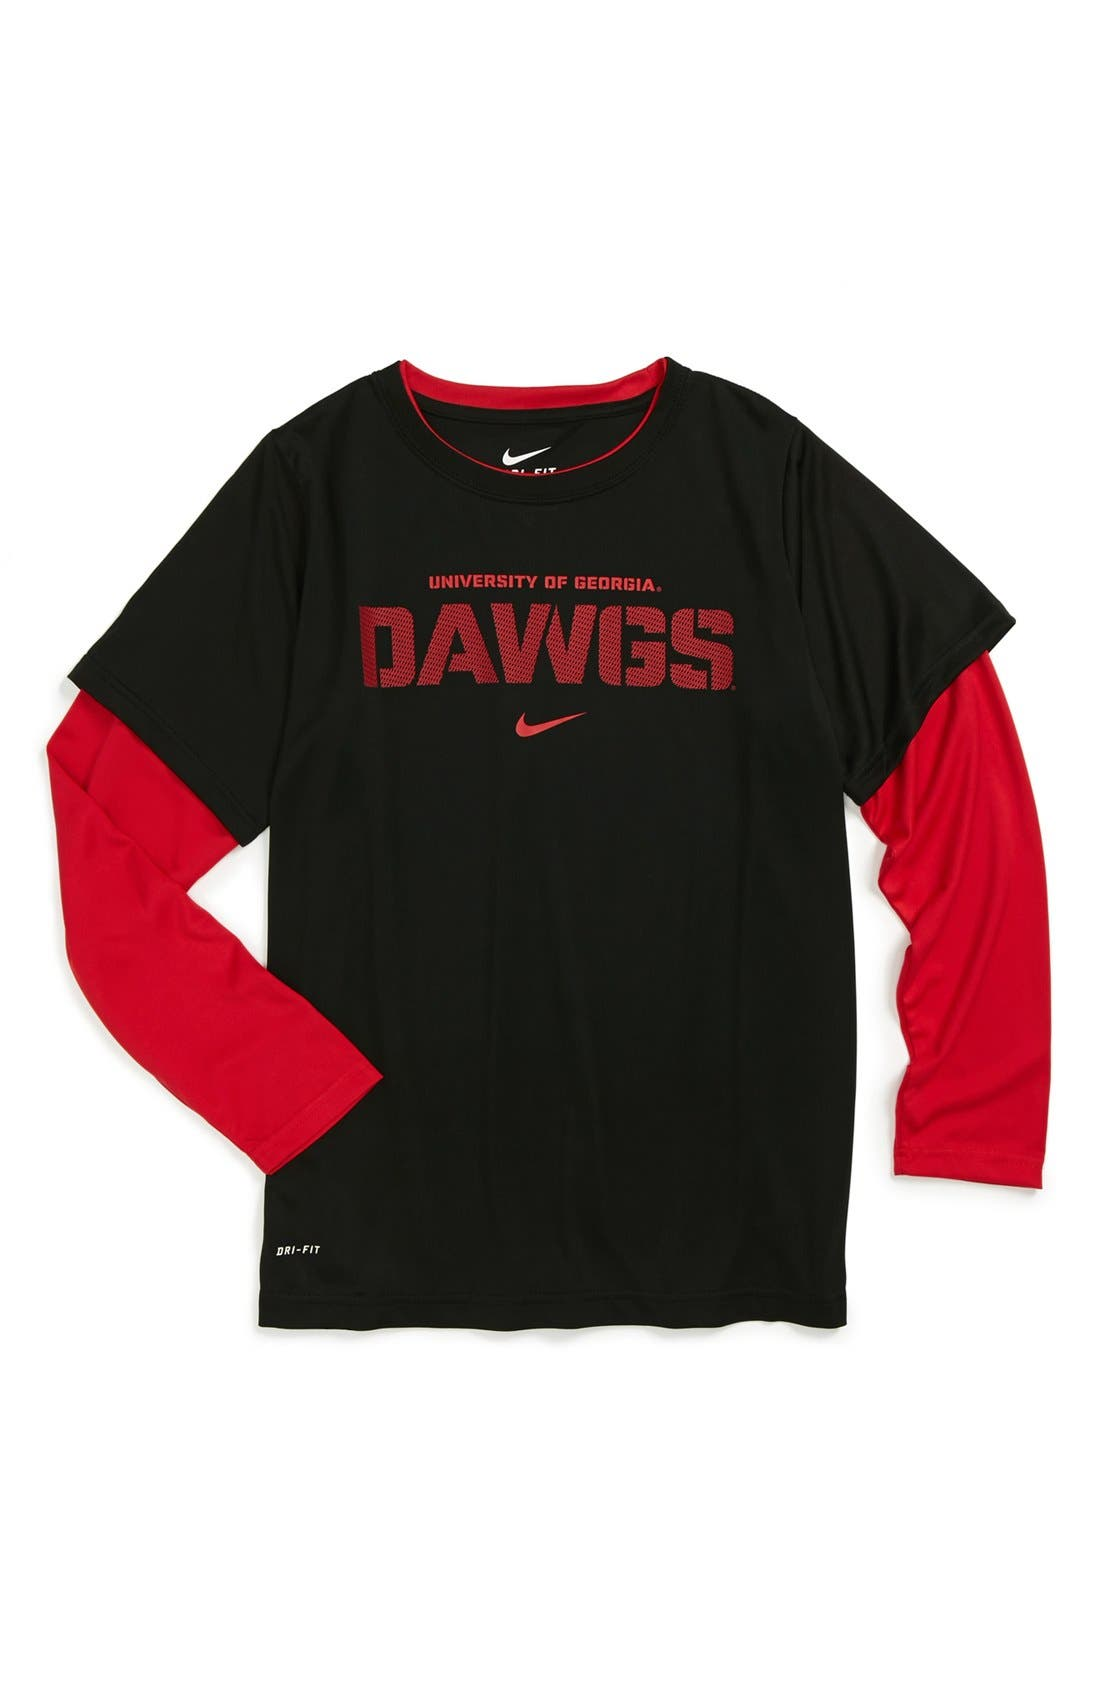 Alternate Image 1 Selected - Nike 'University of Georgia Bulldogs' Dri-FIT Layered Sleeve Sport T-Shirt (Big Boys)